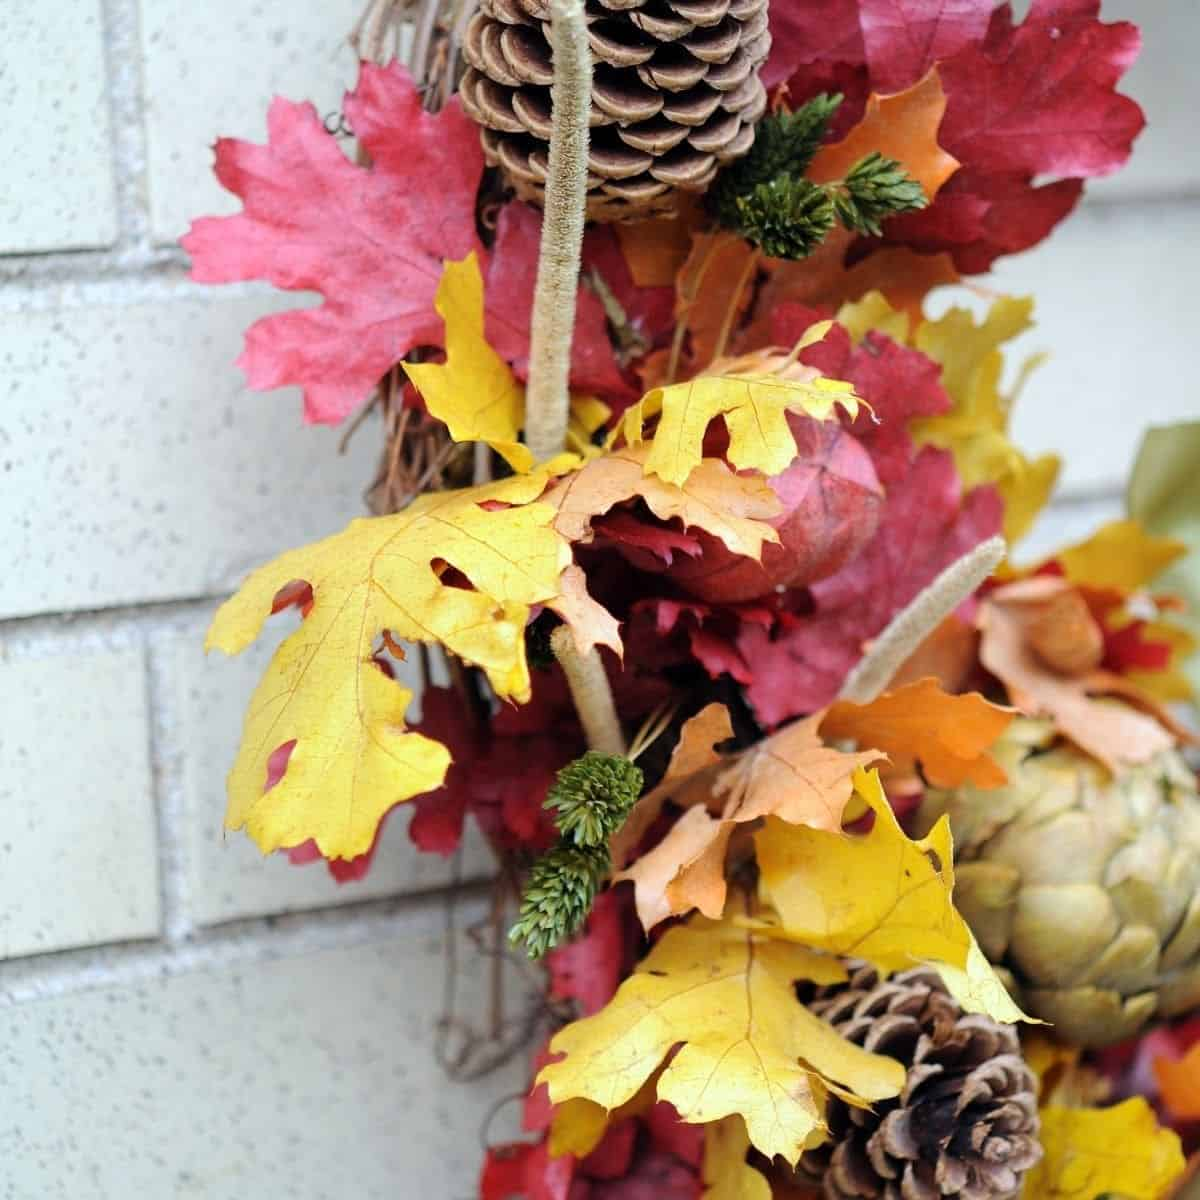 embracing fall vibes with a fall wreath